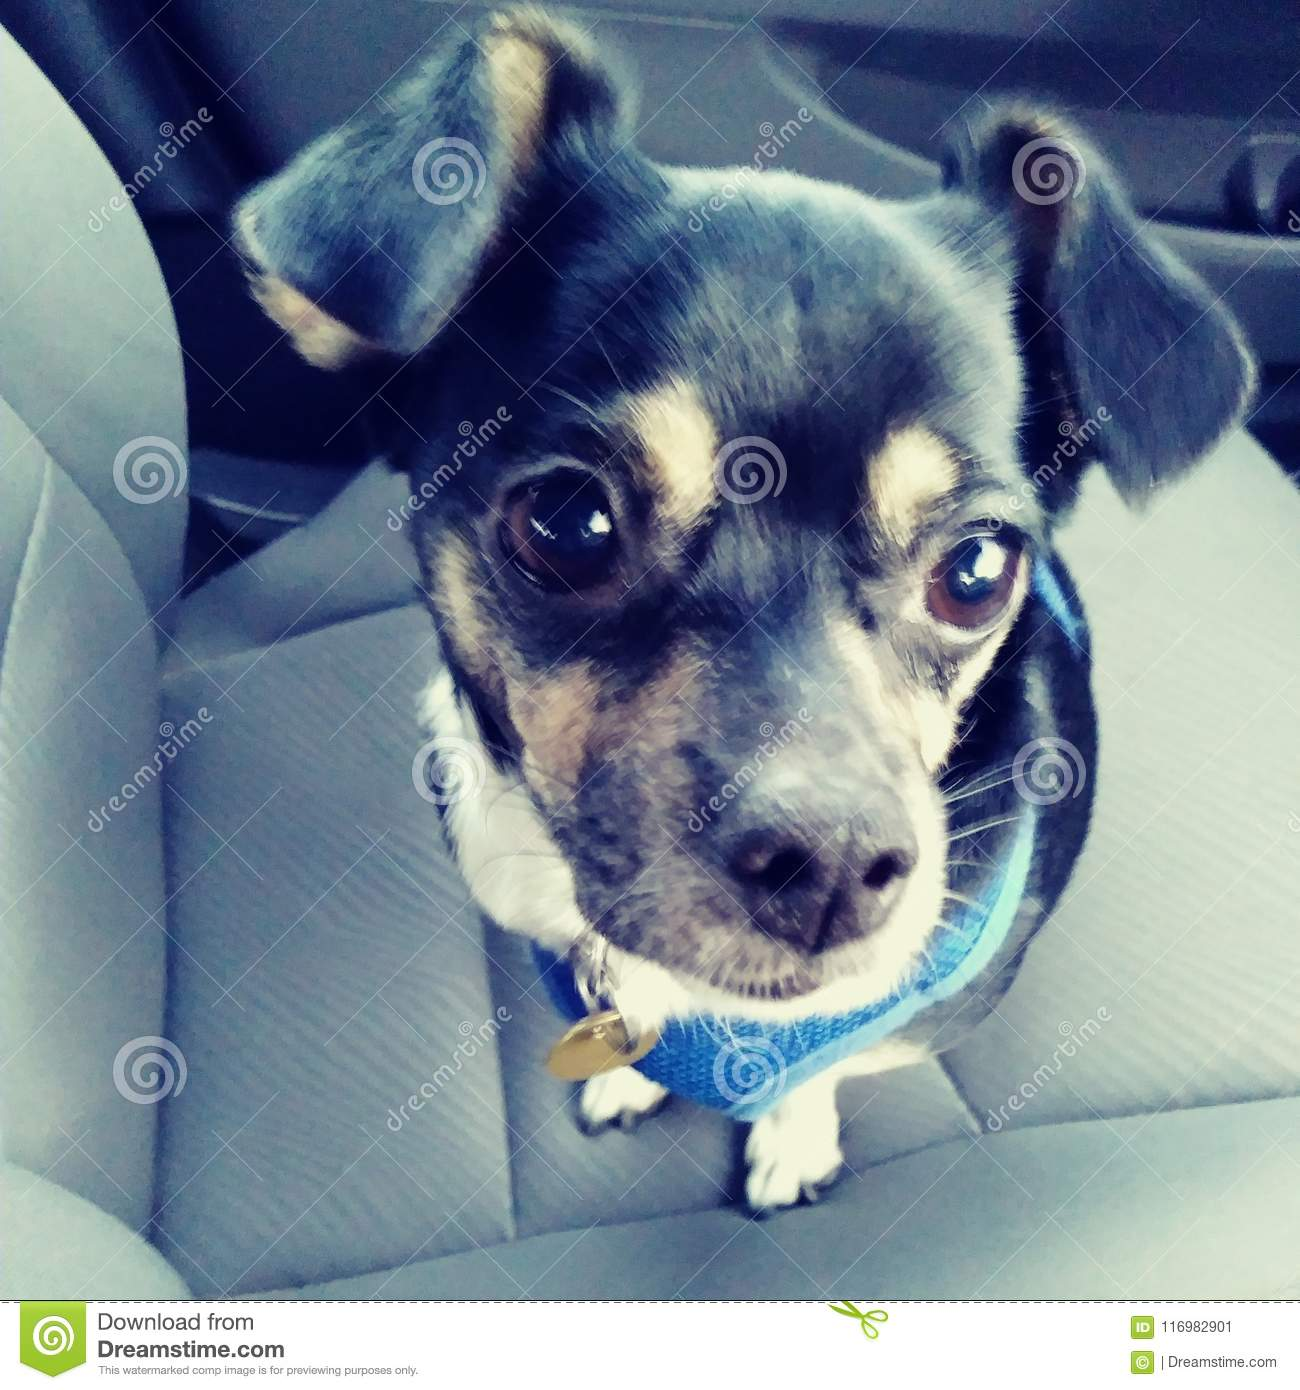 Chihuahua Dog Puppy Cute Adorable Riding In A Car Big Eyes Floppy Ears Black Tan And White Adorable Stock Image Image Of Puppy Adorable 116982901